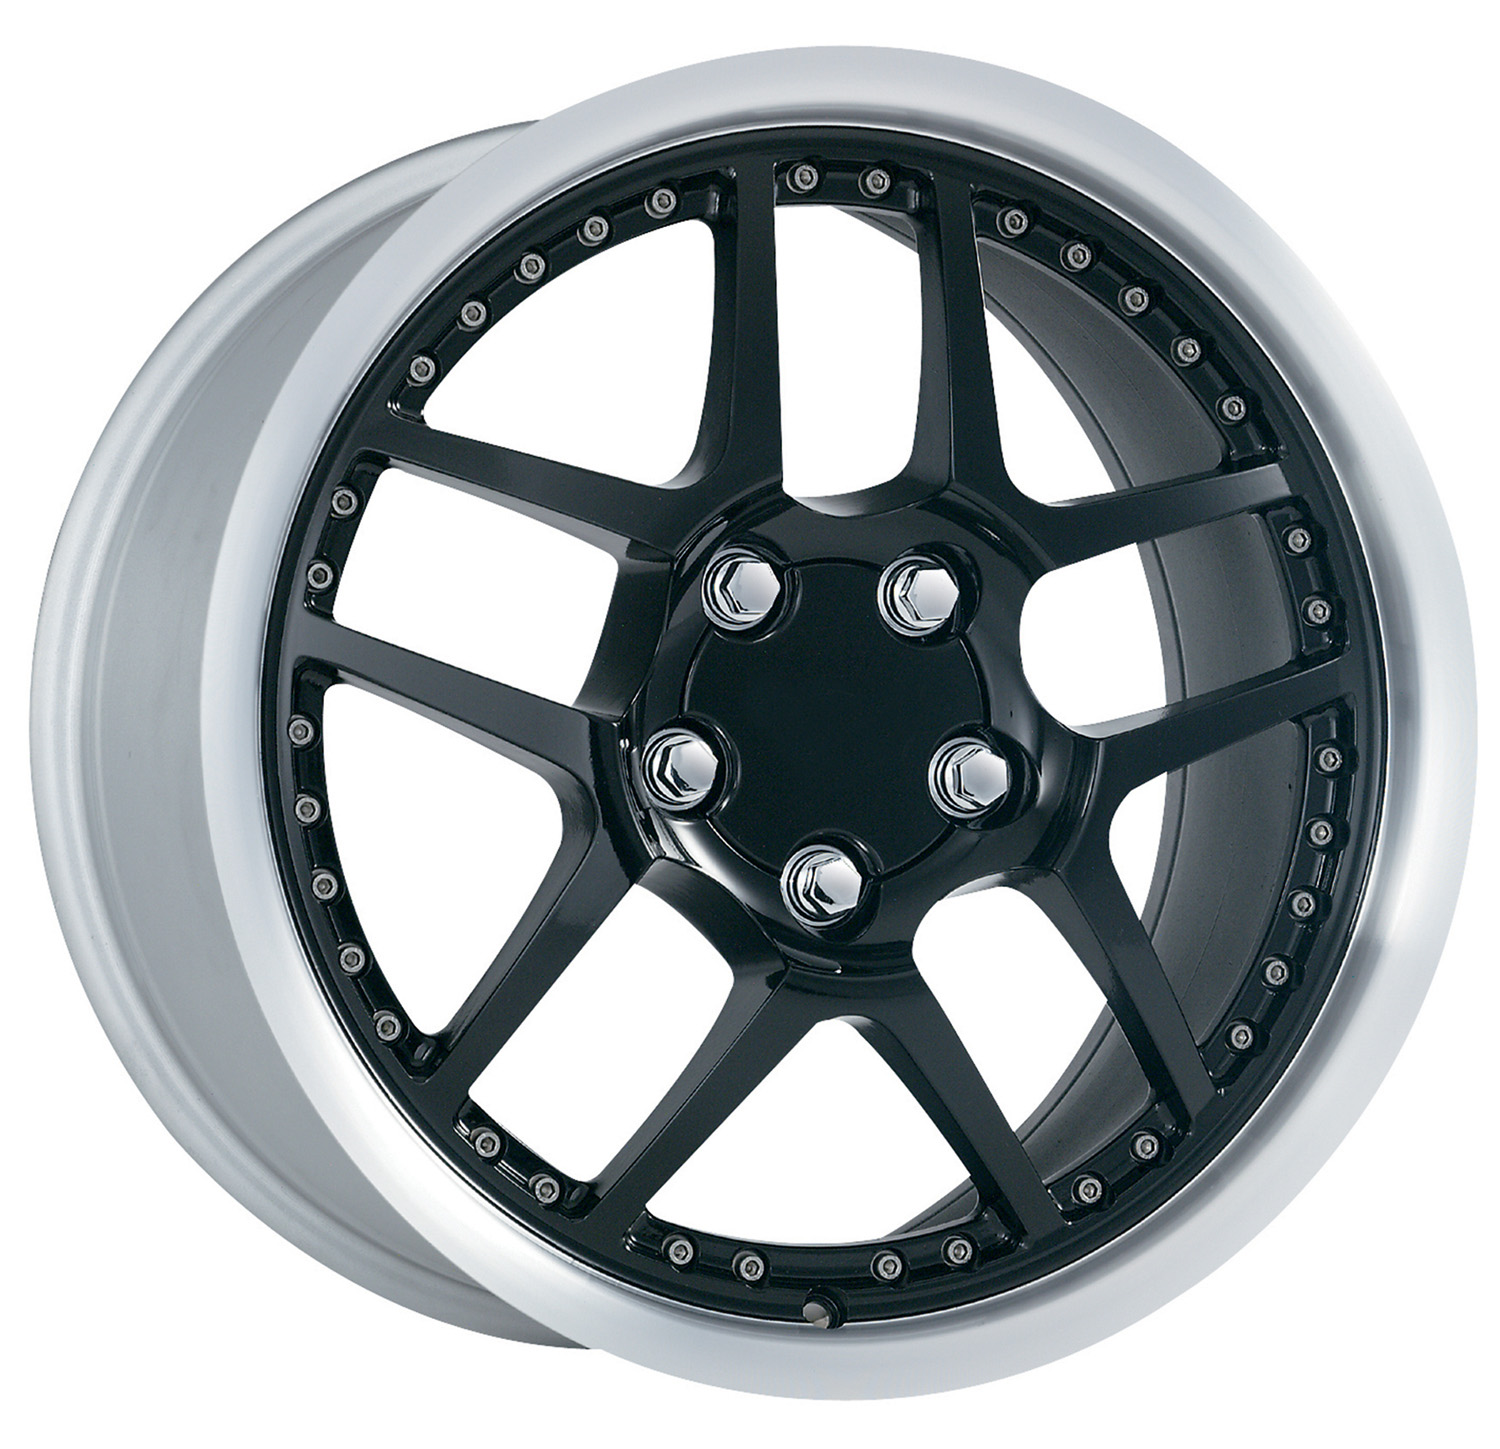 Chevrolet Corvette 1997-2004 18x9.5 5x4.75 +57 -C5 Z06 Style Wheel - Motorsport Black Machine Lip With Cap